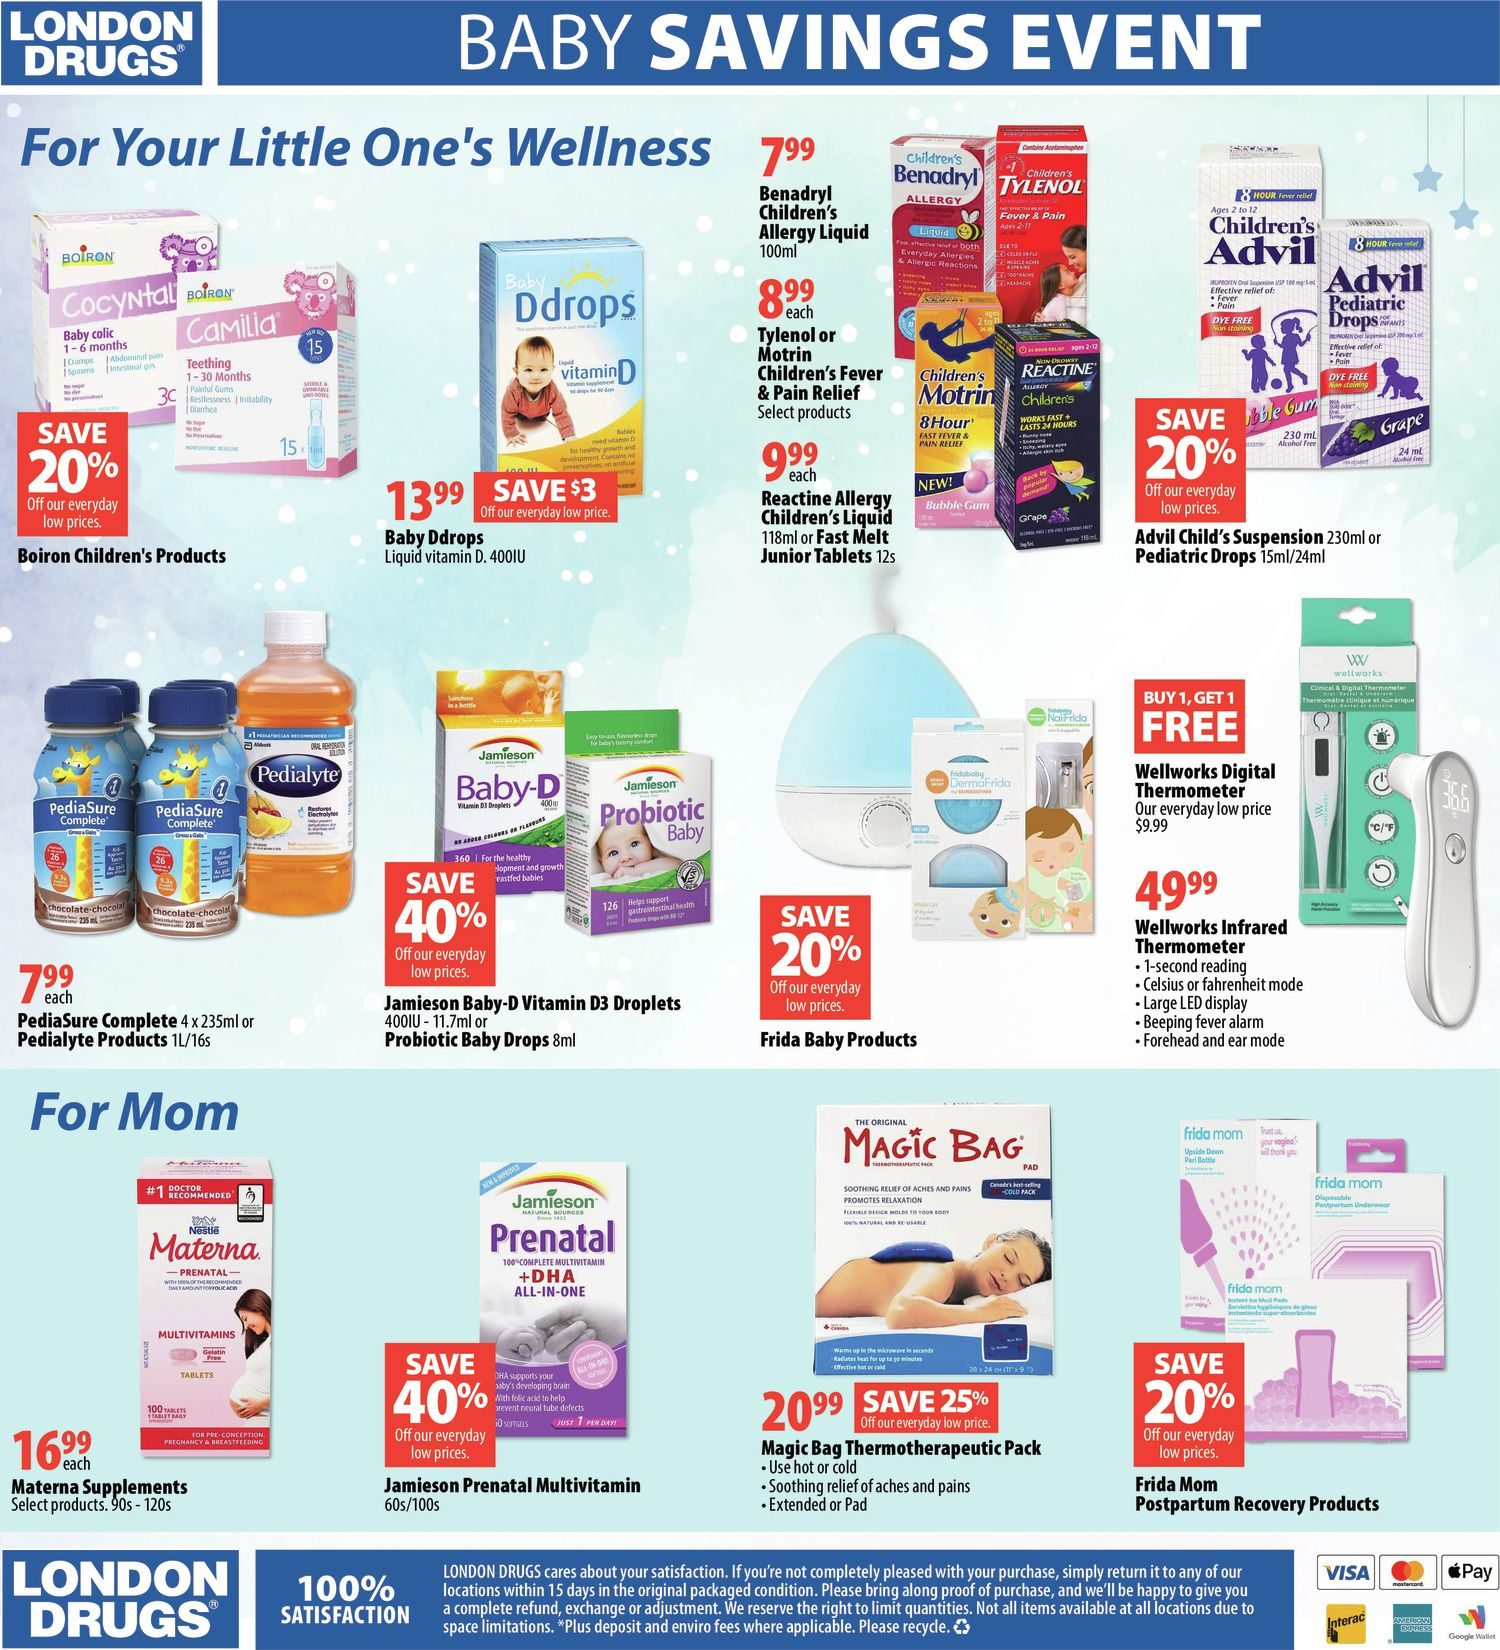 London Drugs - Baby Savings Event - Page 8